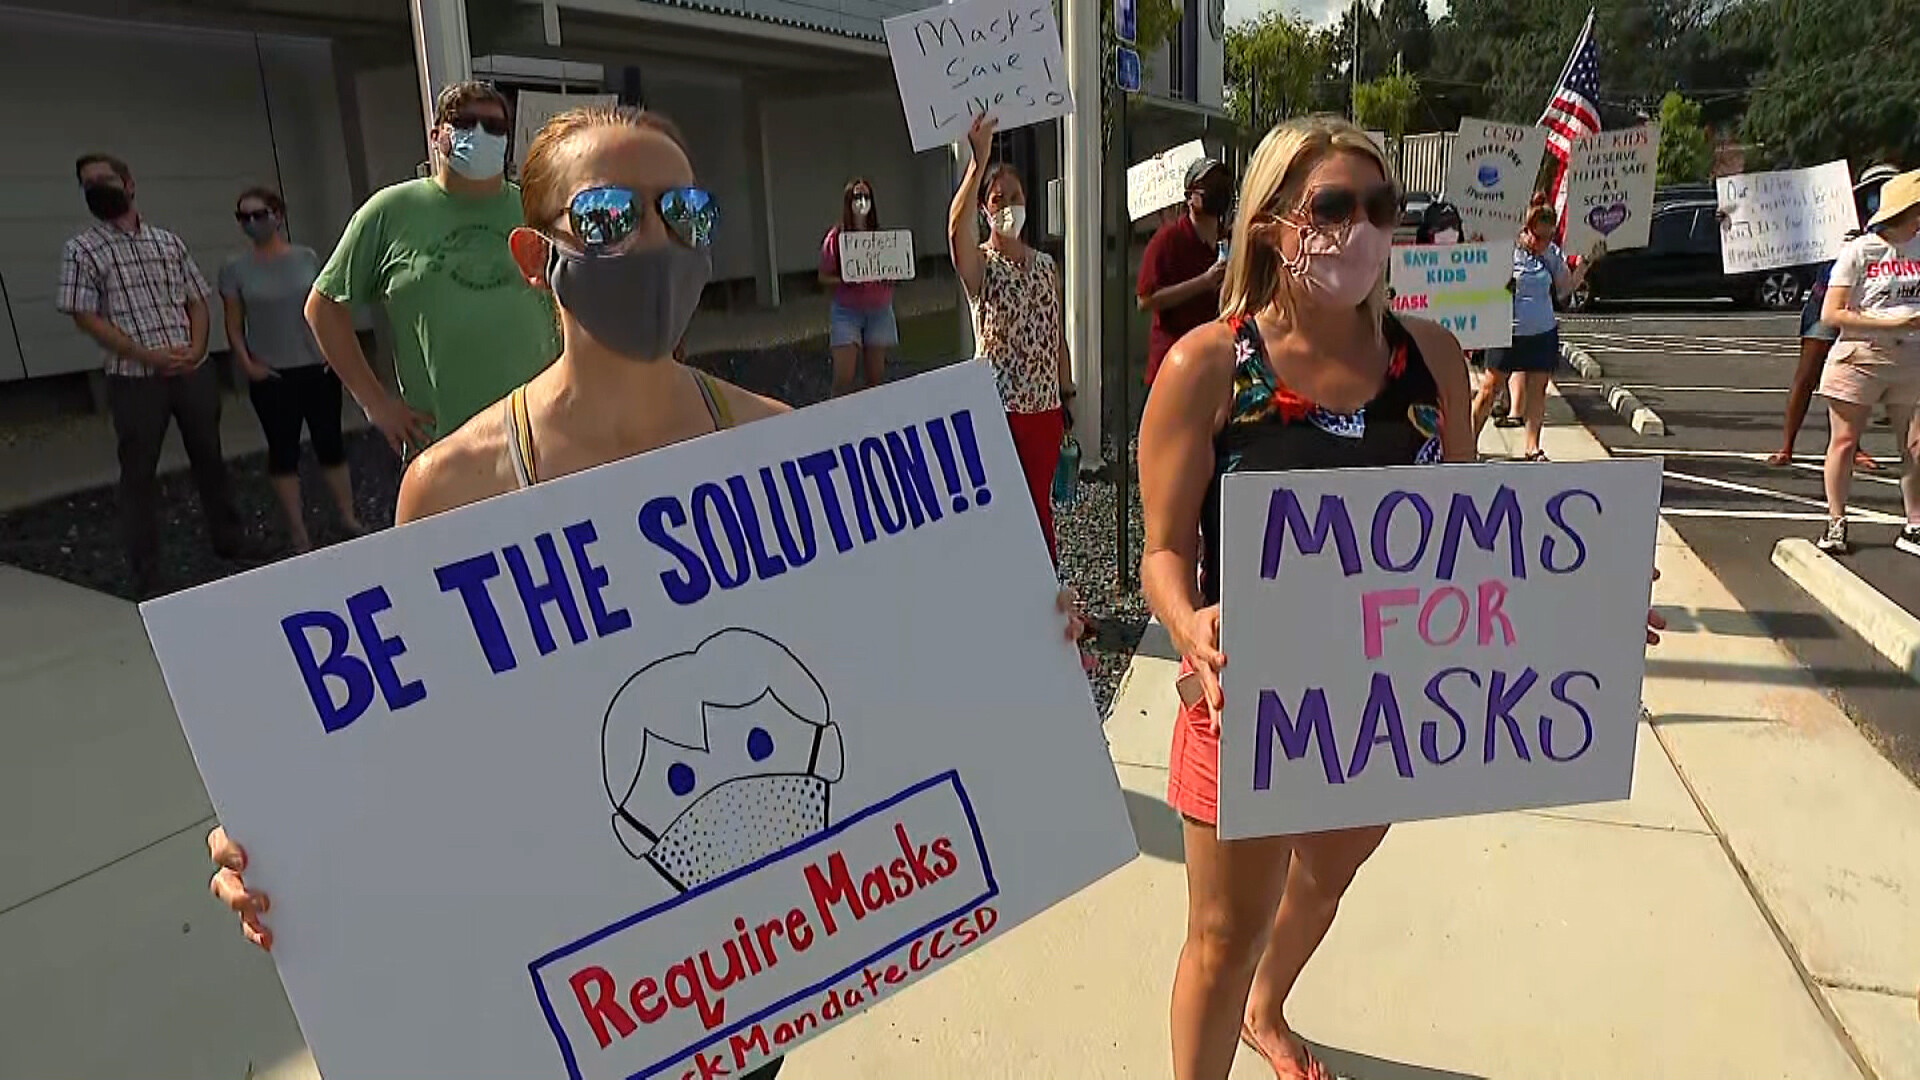 Parents clash at mask mandate protest in Georgia county where 5th graders were sent home